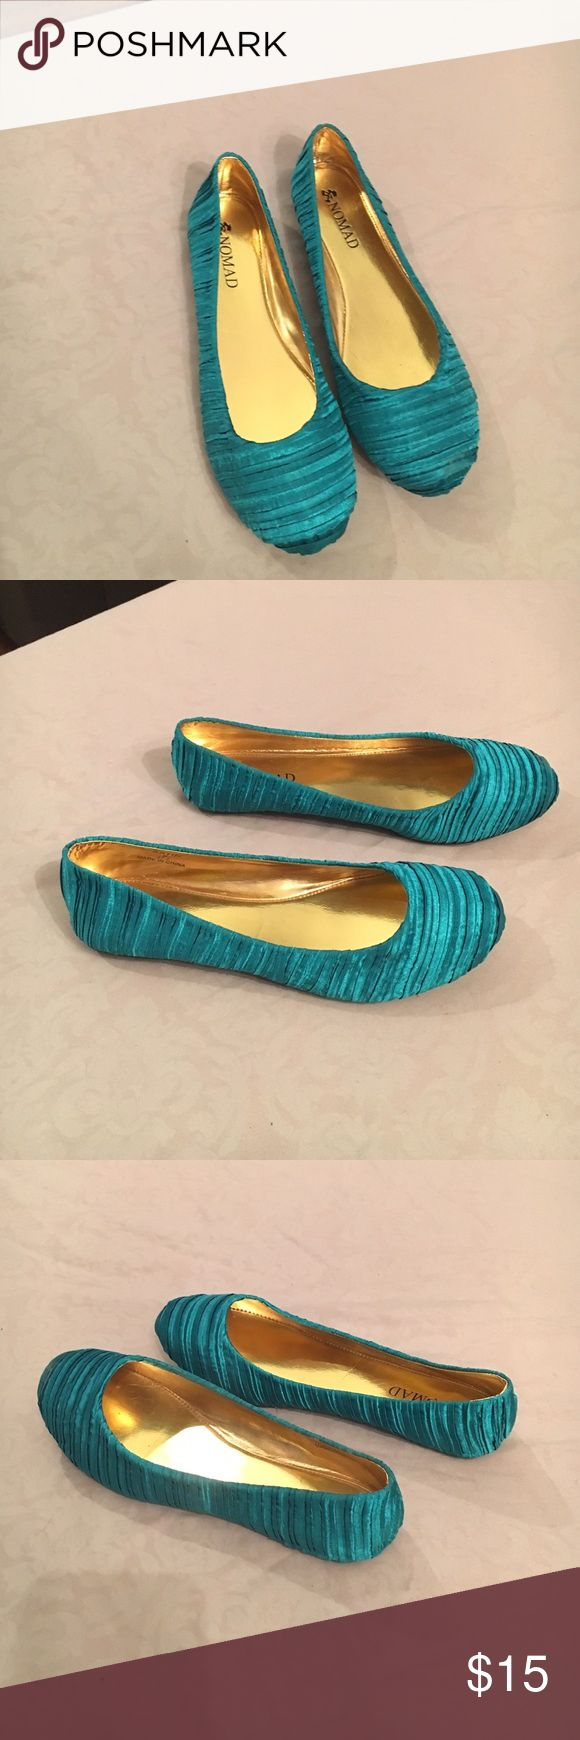 Satin Teal Flats- 8 New, never been worn outside, Nomad teal satin flats. Size 8 Nomad Shoes Flats & Loafers